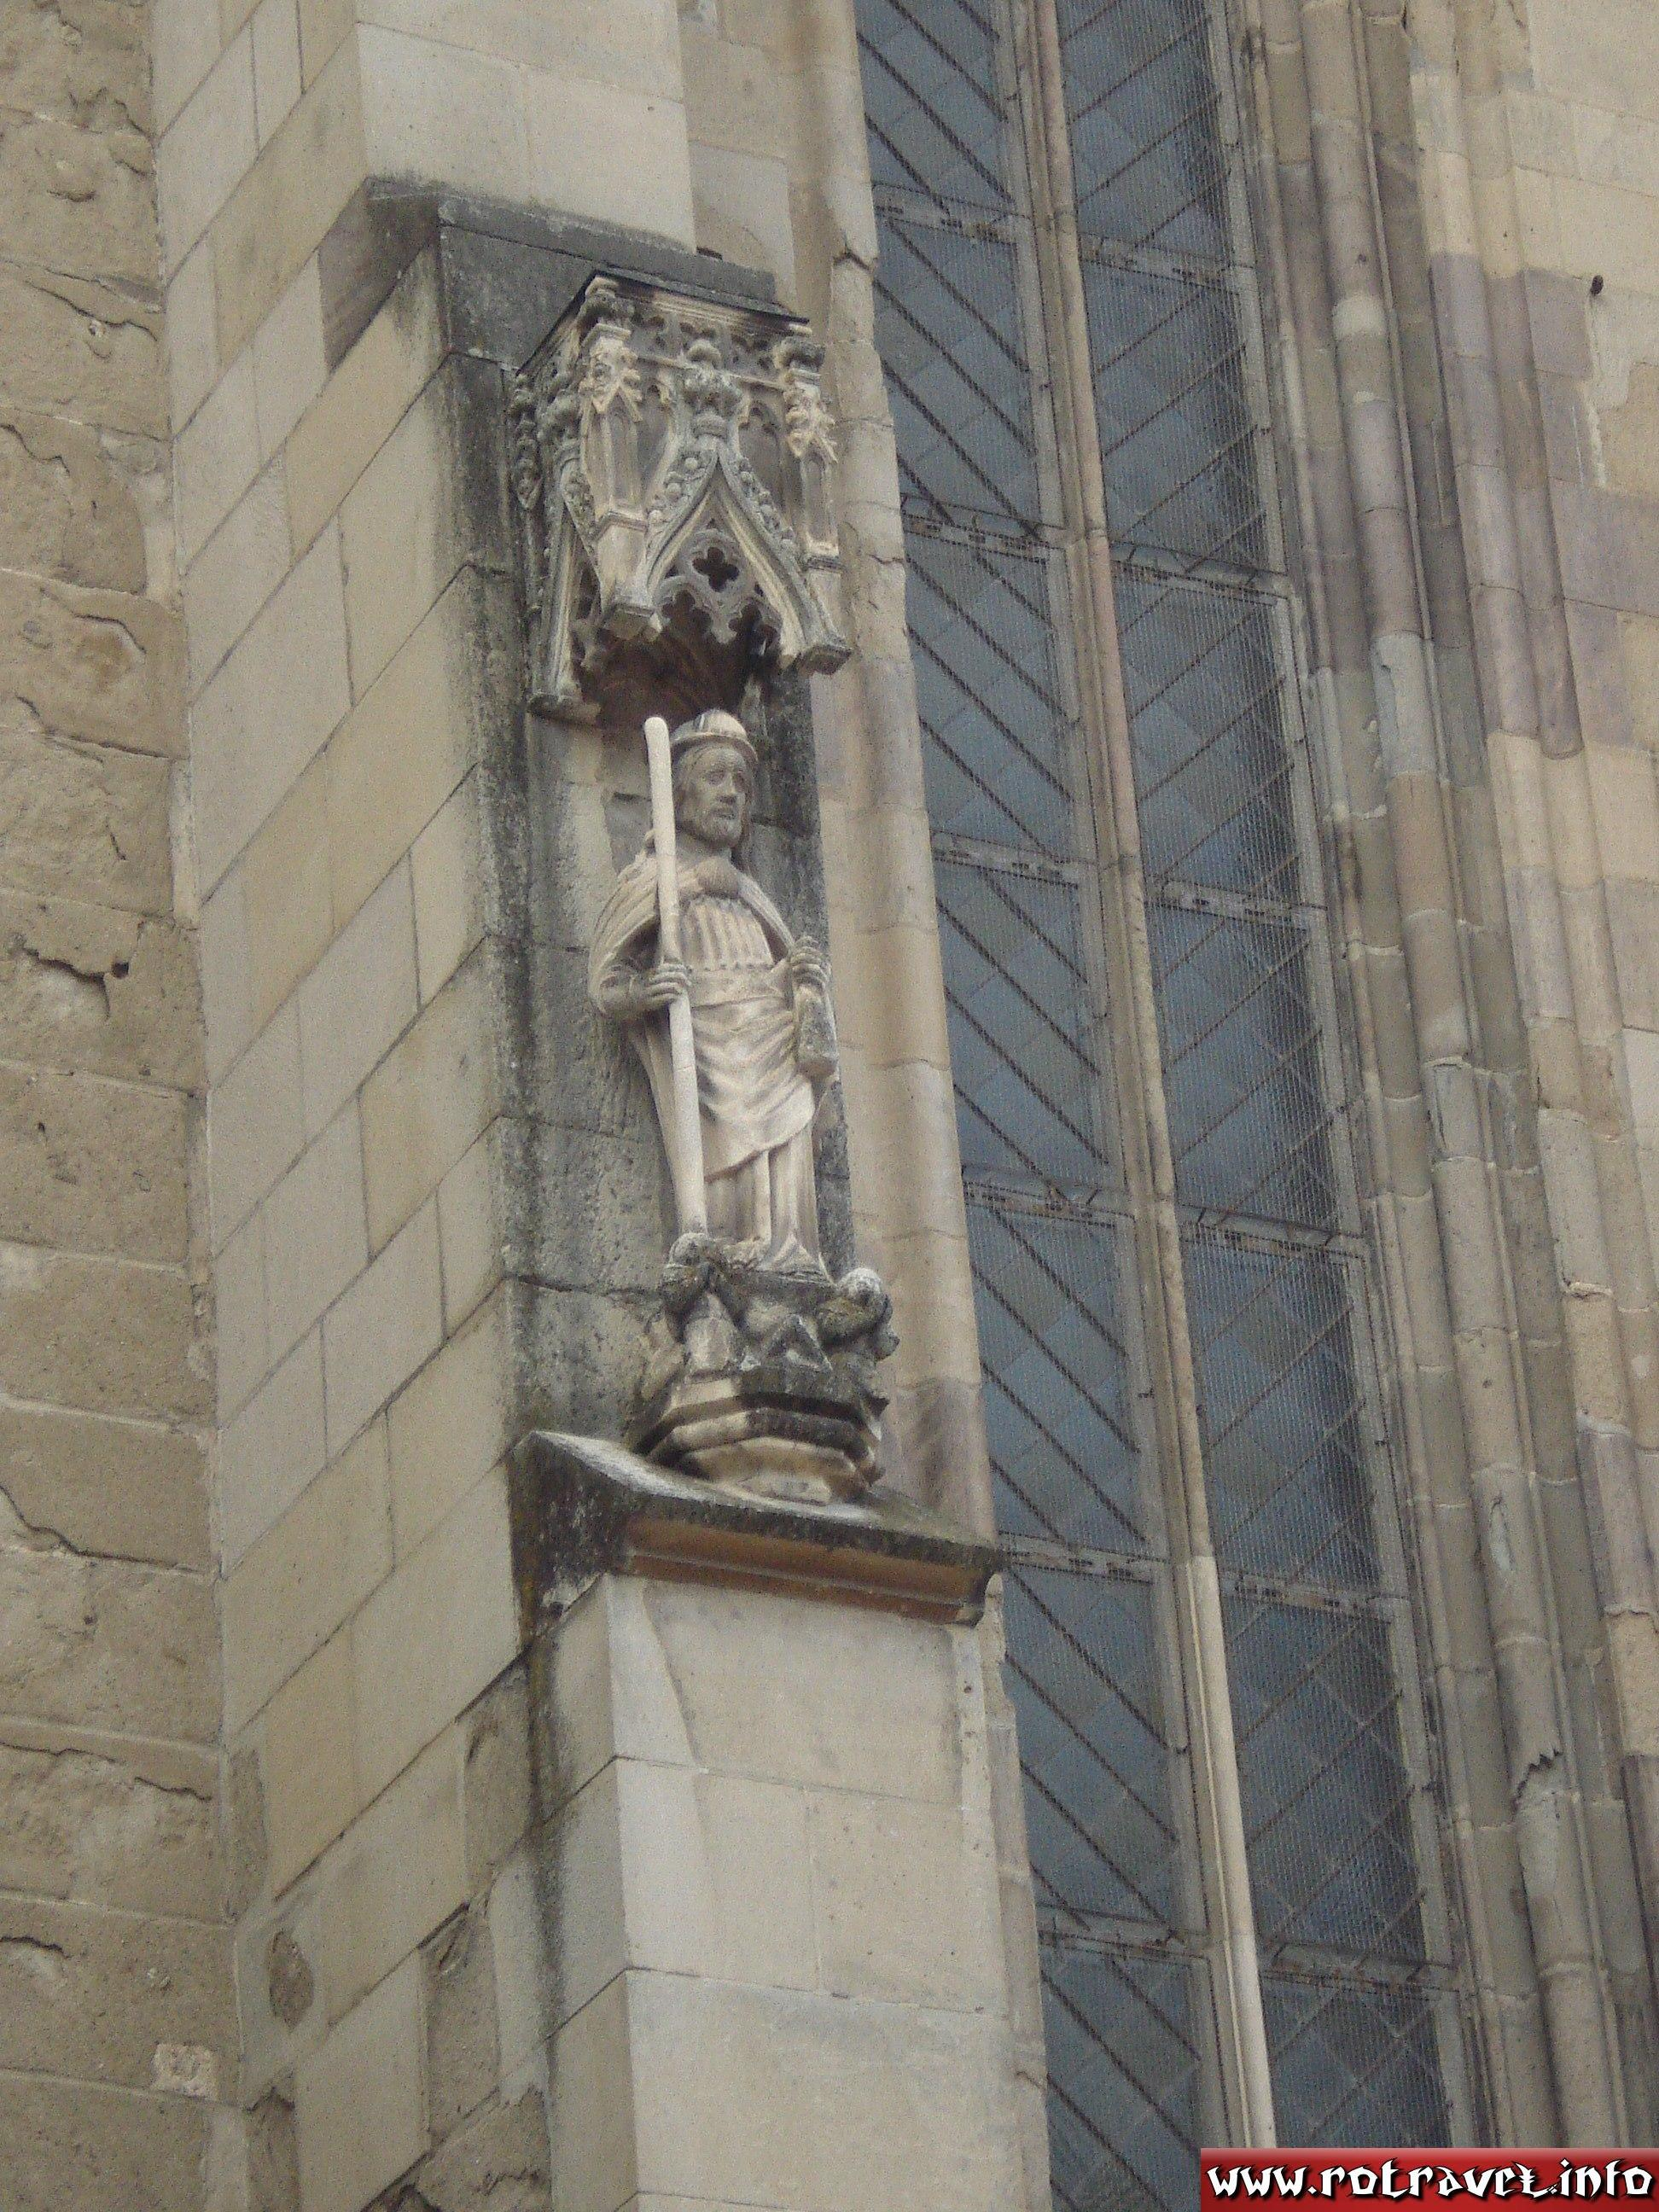 Small statues outside of church